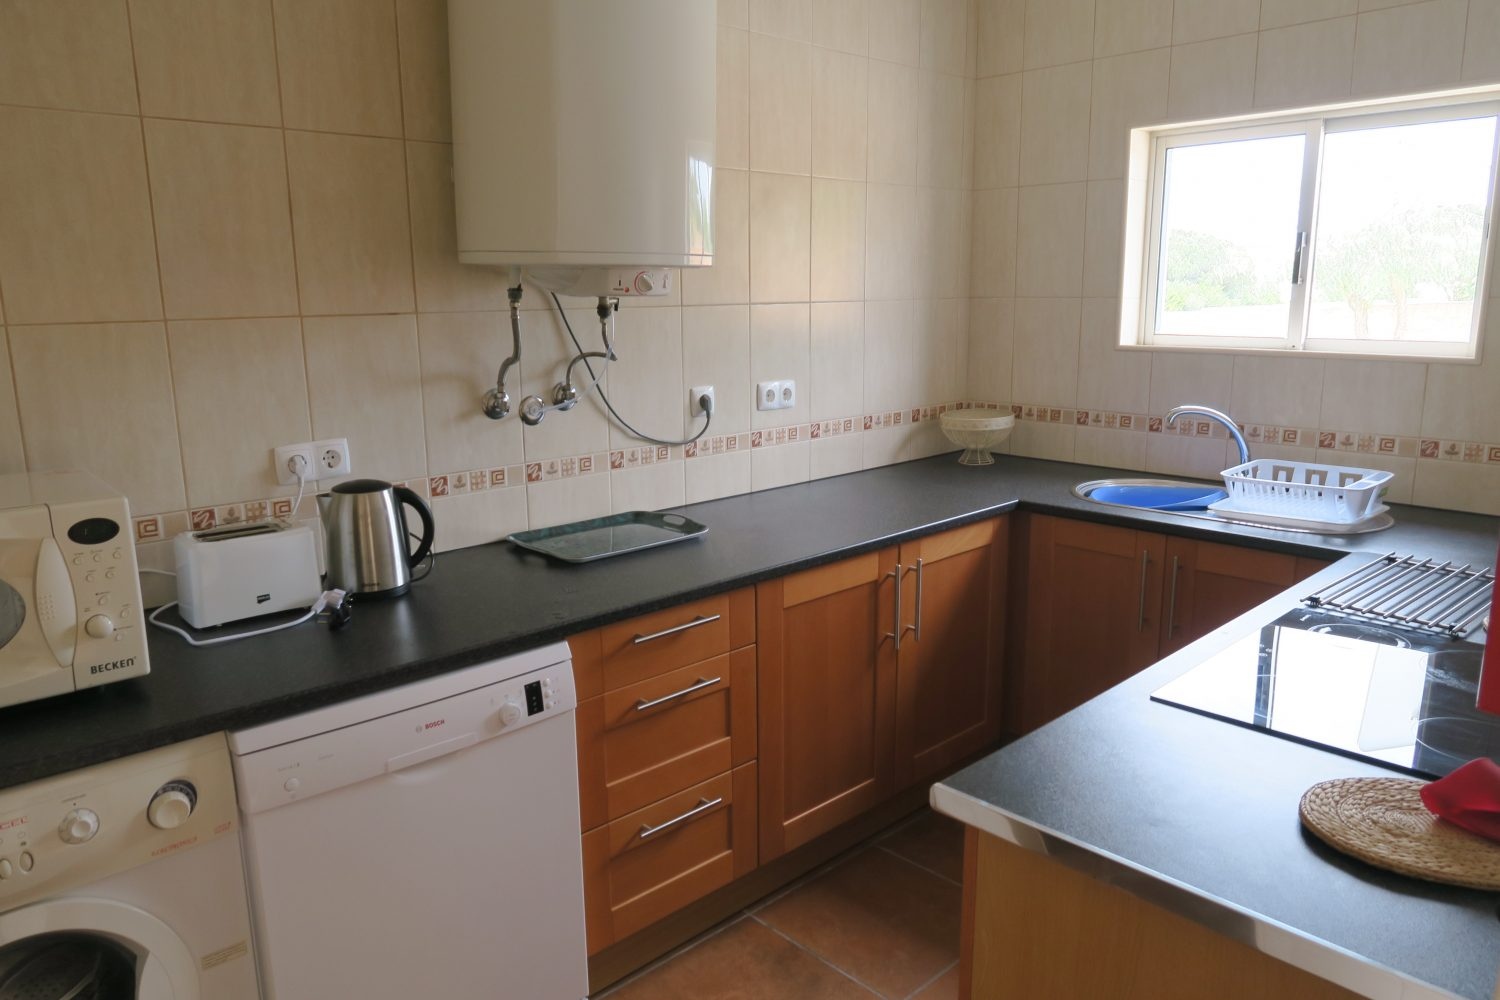 Villa - Kitchen with washing machine and dish washer